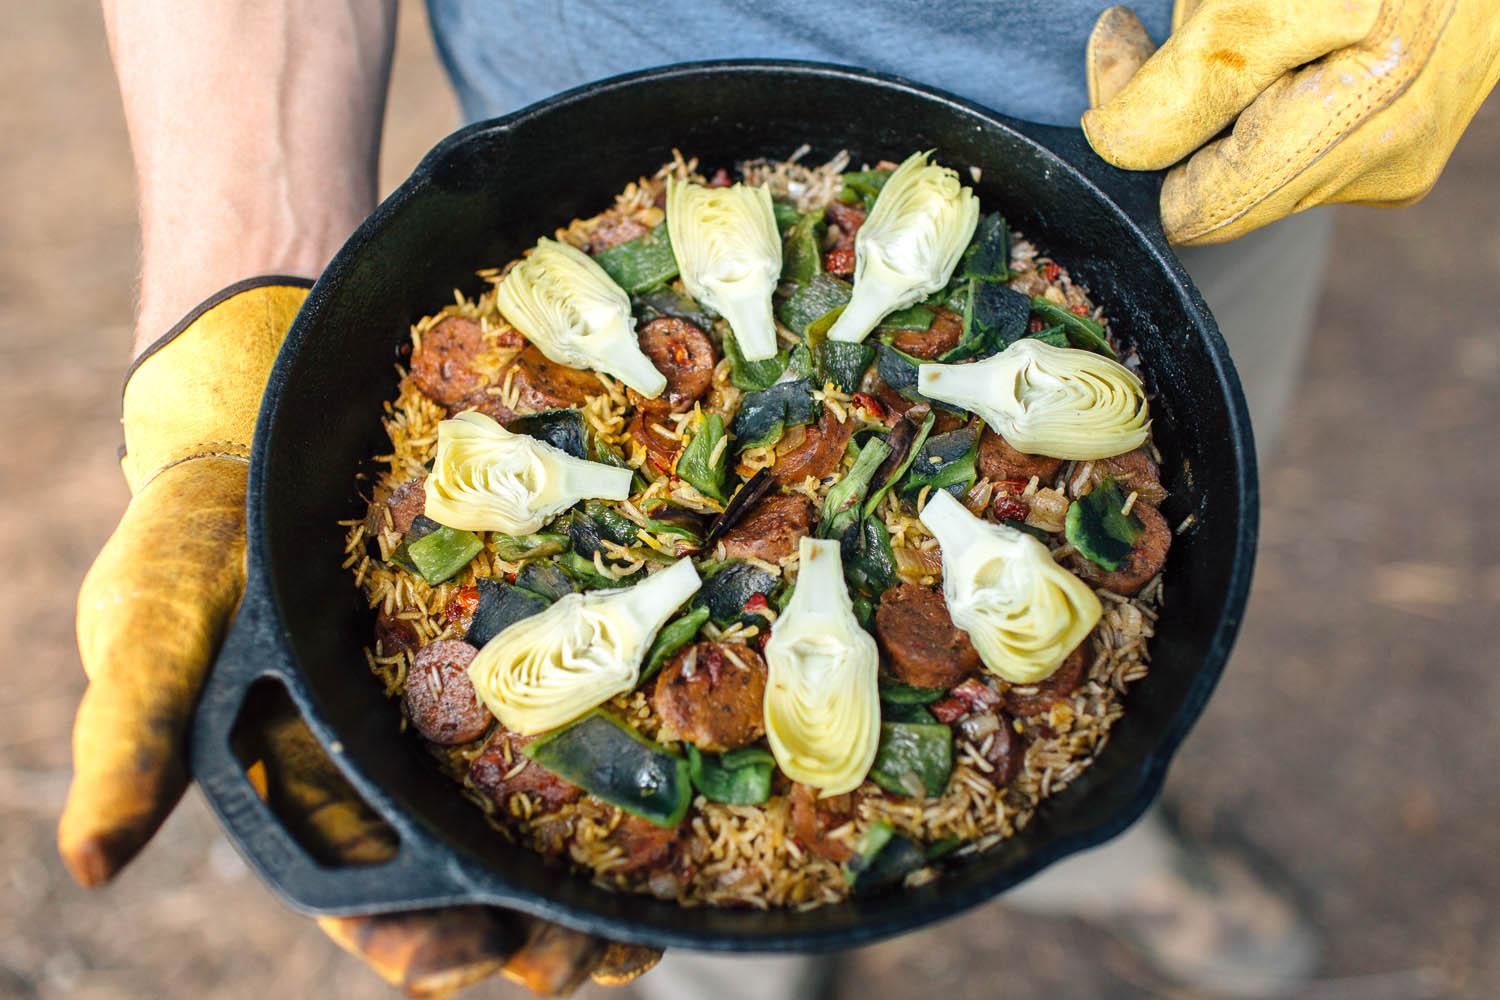 Paella might be the ultimate one pot camping meal - you can easily scale it up for groups and change the ingredients to whatever sounds tasty to you!